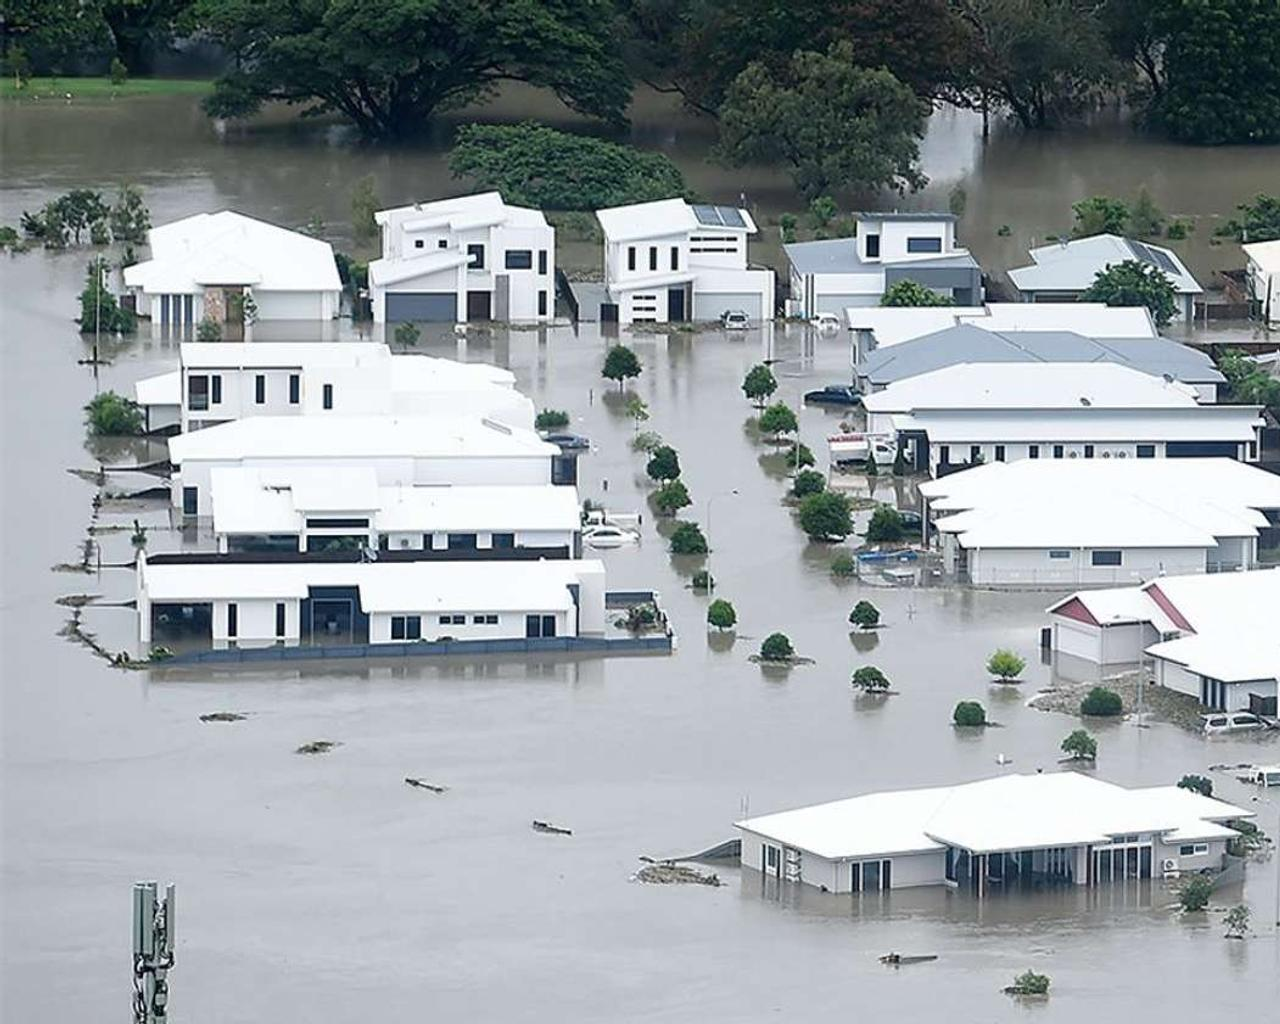 Floods in Australia: Rainfall intensifies as weather systems collide